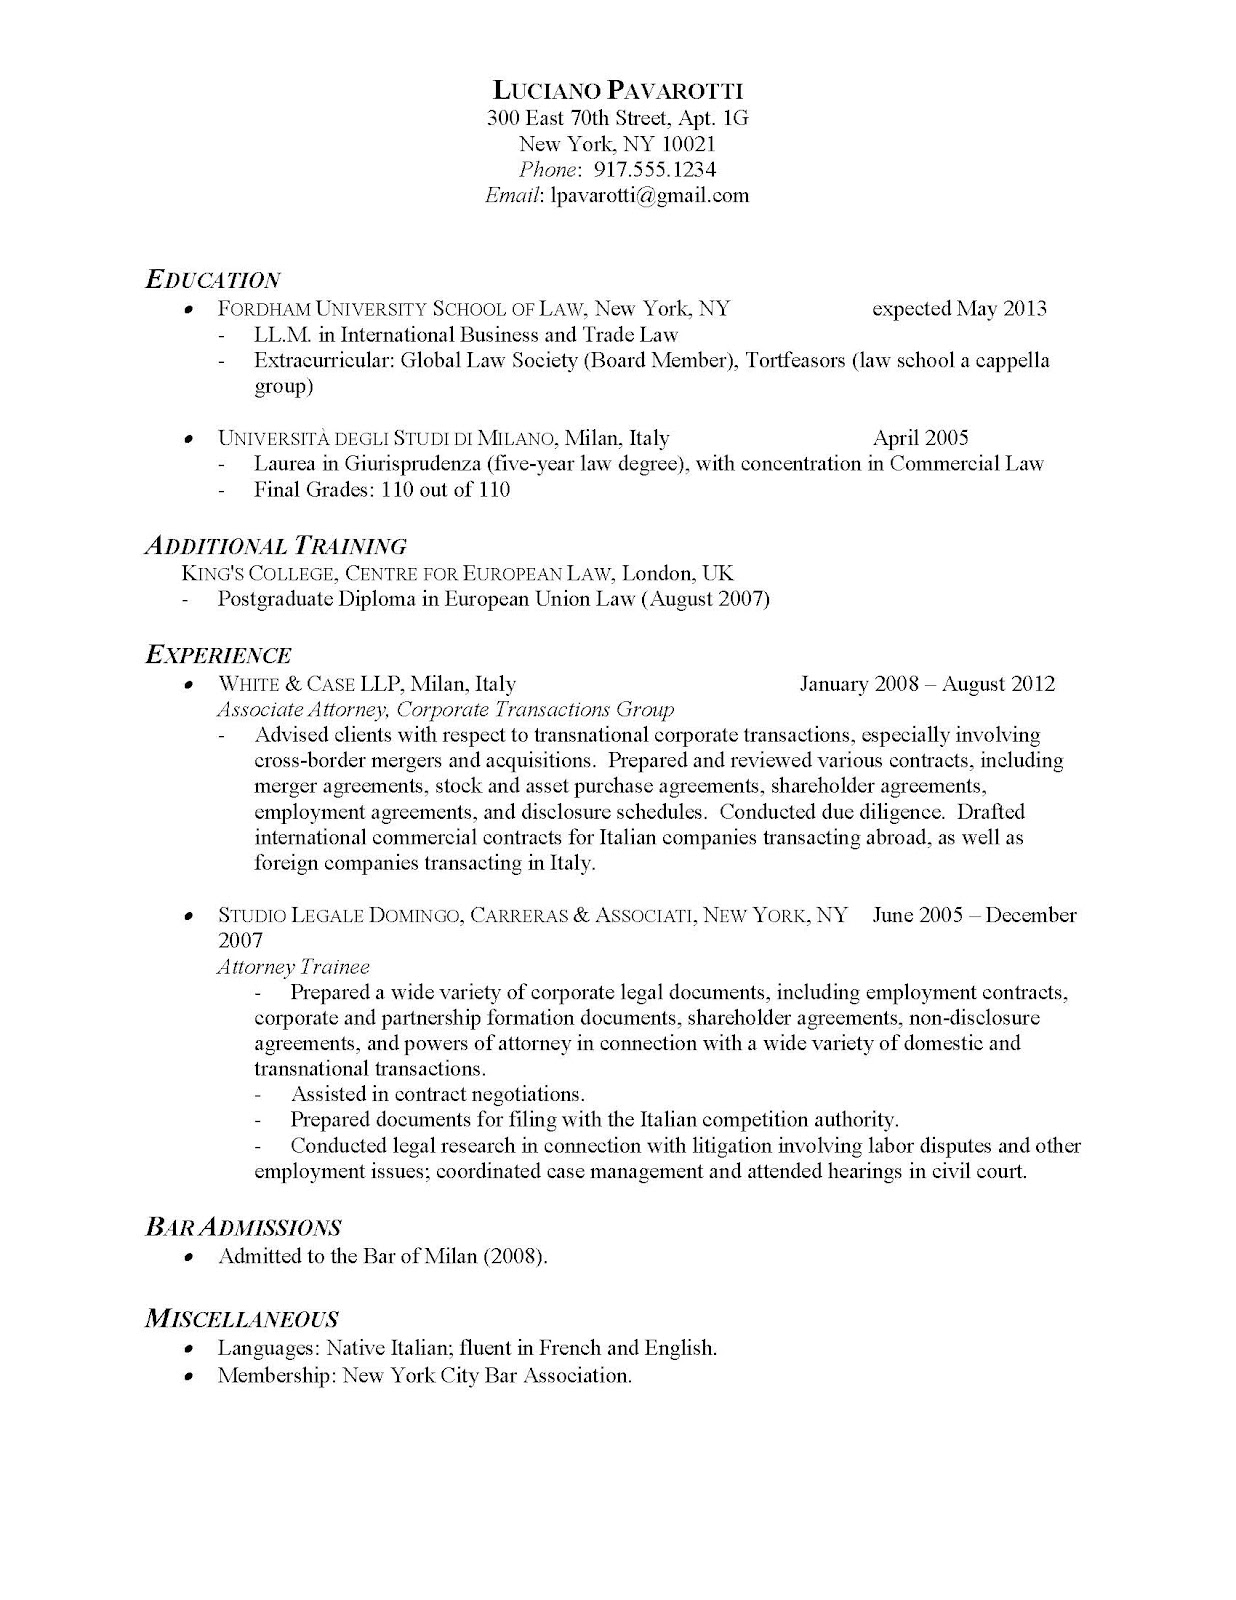 Opposenewapstandardsus  Picturesque Resume Reviewer Resume Reviewer Medioxco With Goodlooking Resume Reviewer Hiringlibrariansresumedoc  Hiringlibrariansresumedoc   With Astounding Resume Description For Server Also Vice President Resume In Addition Electrician Helper Resume And X Ray Tech Resume As Well As Resume Sample For College Student Additionally Police Officer Resume Objective From Medioxco With Opposenewapstandardsus  Goodlooking Resume Reviewer Resume Reviewer Medioxco With Astounding Resume Reviewer Hiringlibrariansresumedoc  Hiringlibrariansresumedoc   And Picturesque Resume Description For Server Also Vice President Resume In Addition Electrician Helper Resume From Medioxco